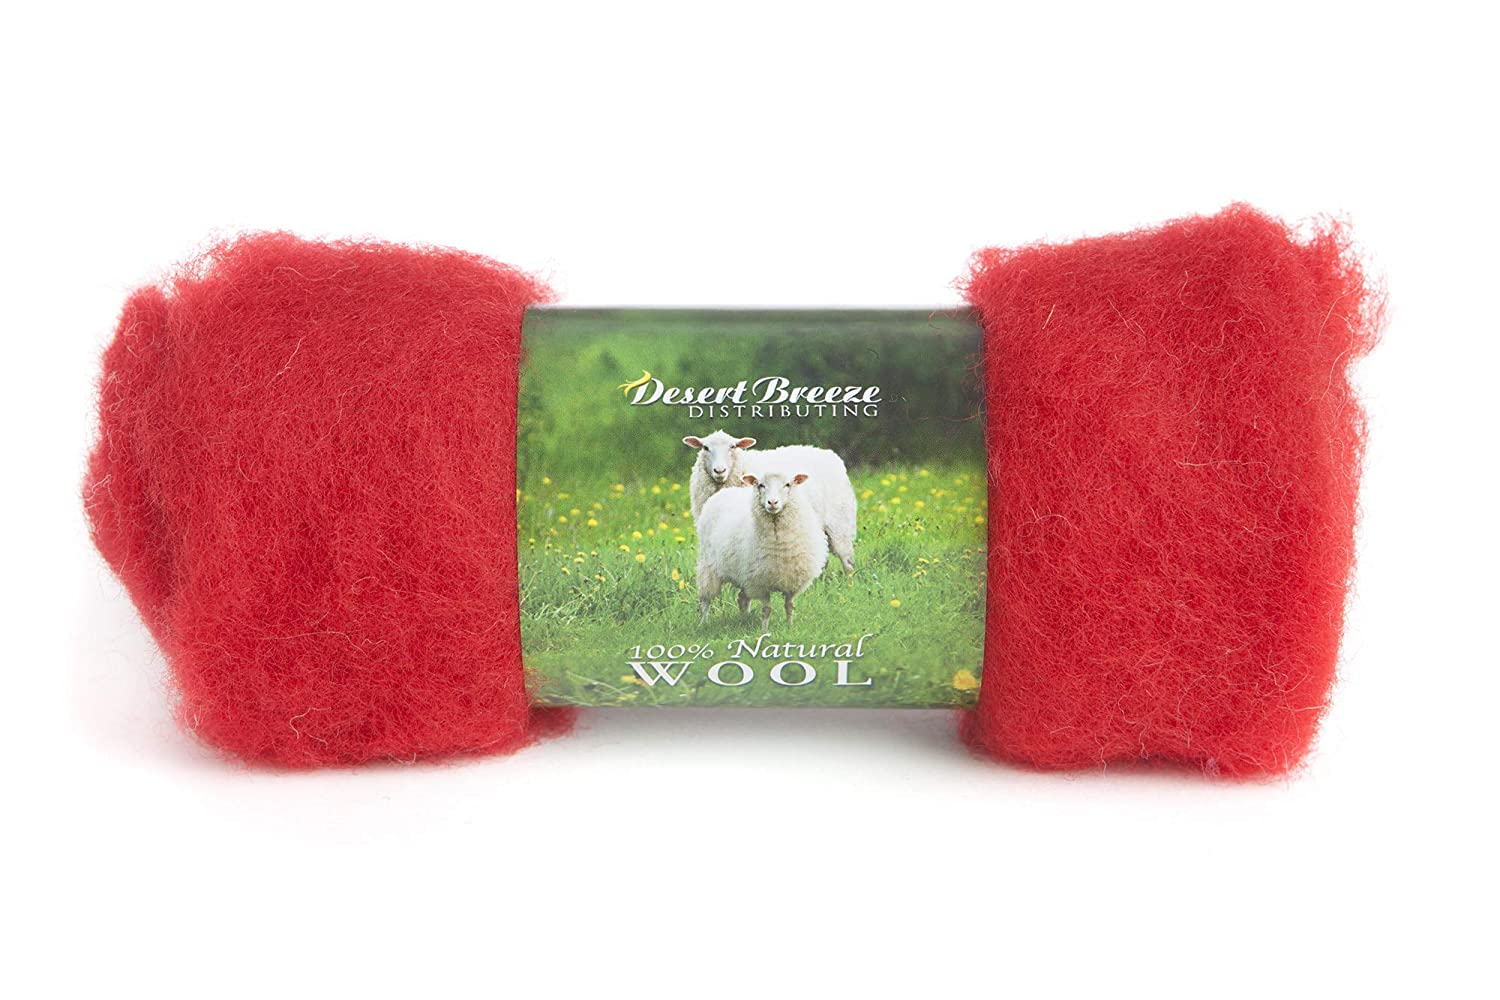 1 OZ Carded Wool Batt Maori Wool A Special Blend of New Zealand Wools by DHG for Needle Felting and Wet Felting 100/% Pure Wool Color Charcoal Gray